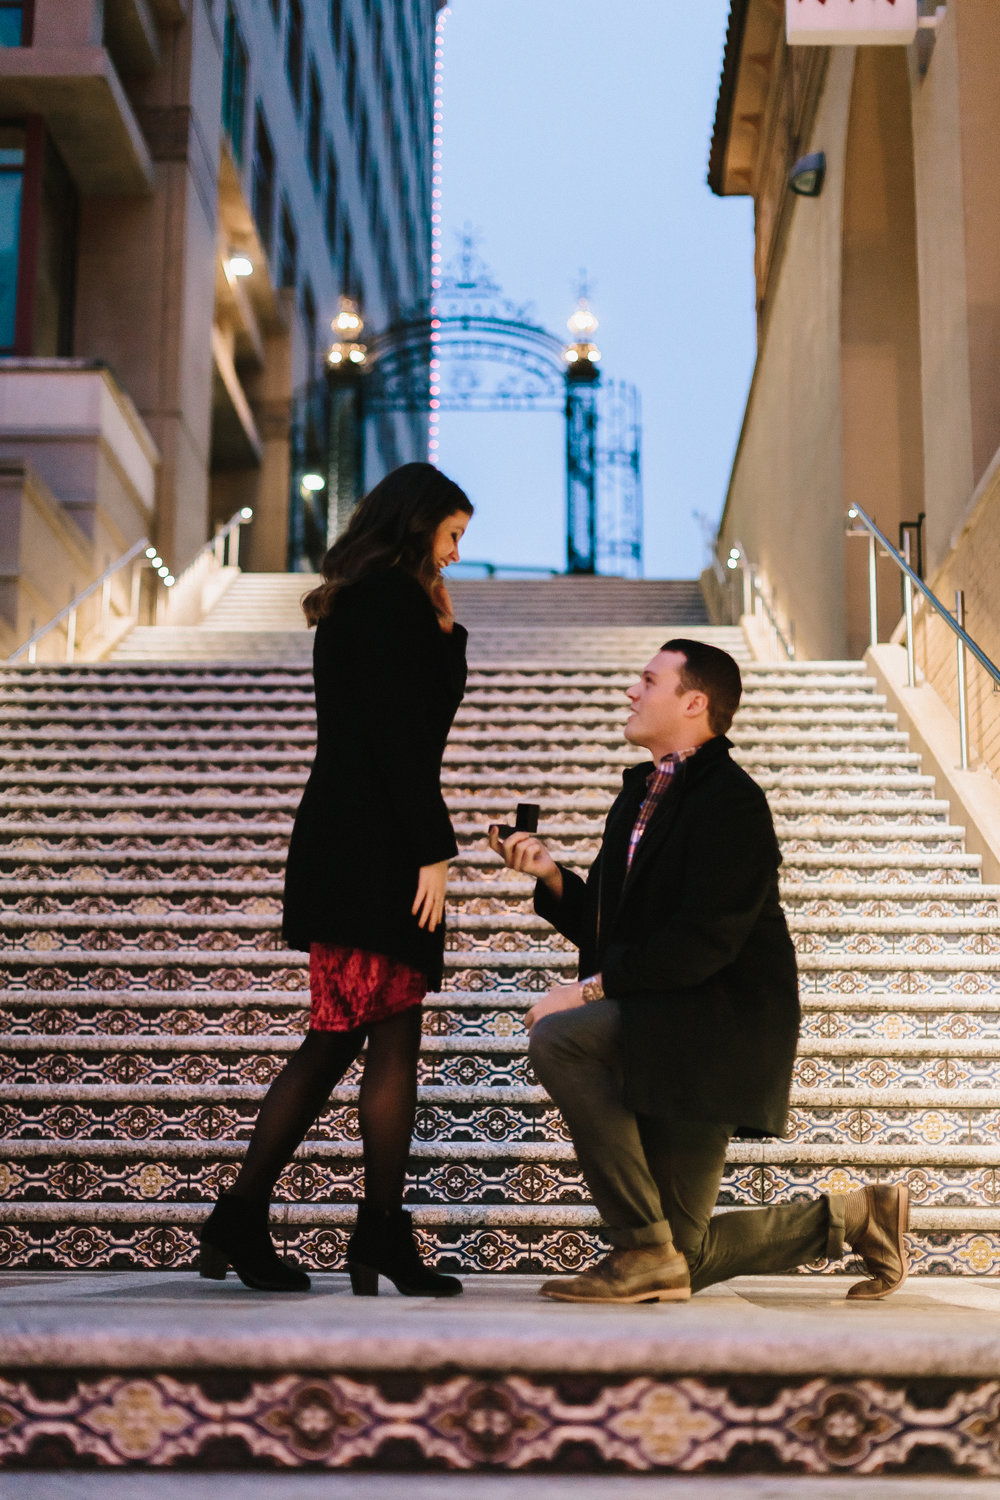 alyssa barletter photography christmas winter wedding proposal plaza lights plaza stairs she said yes-2.jpg